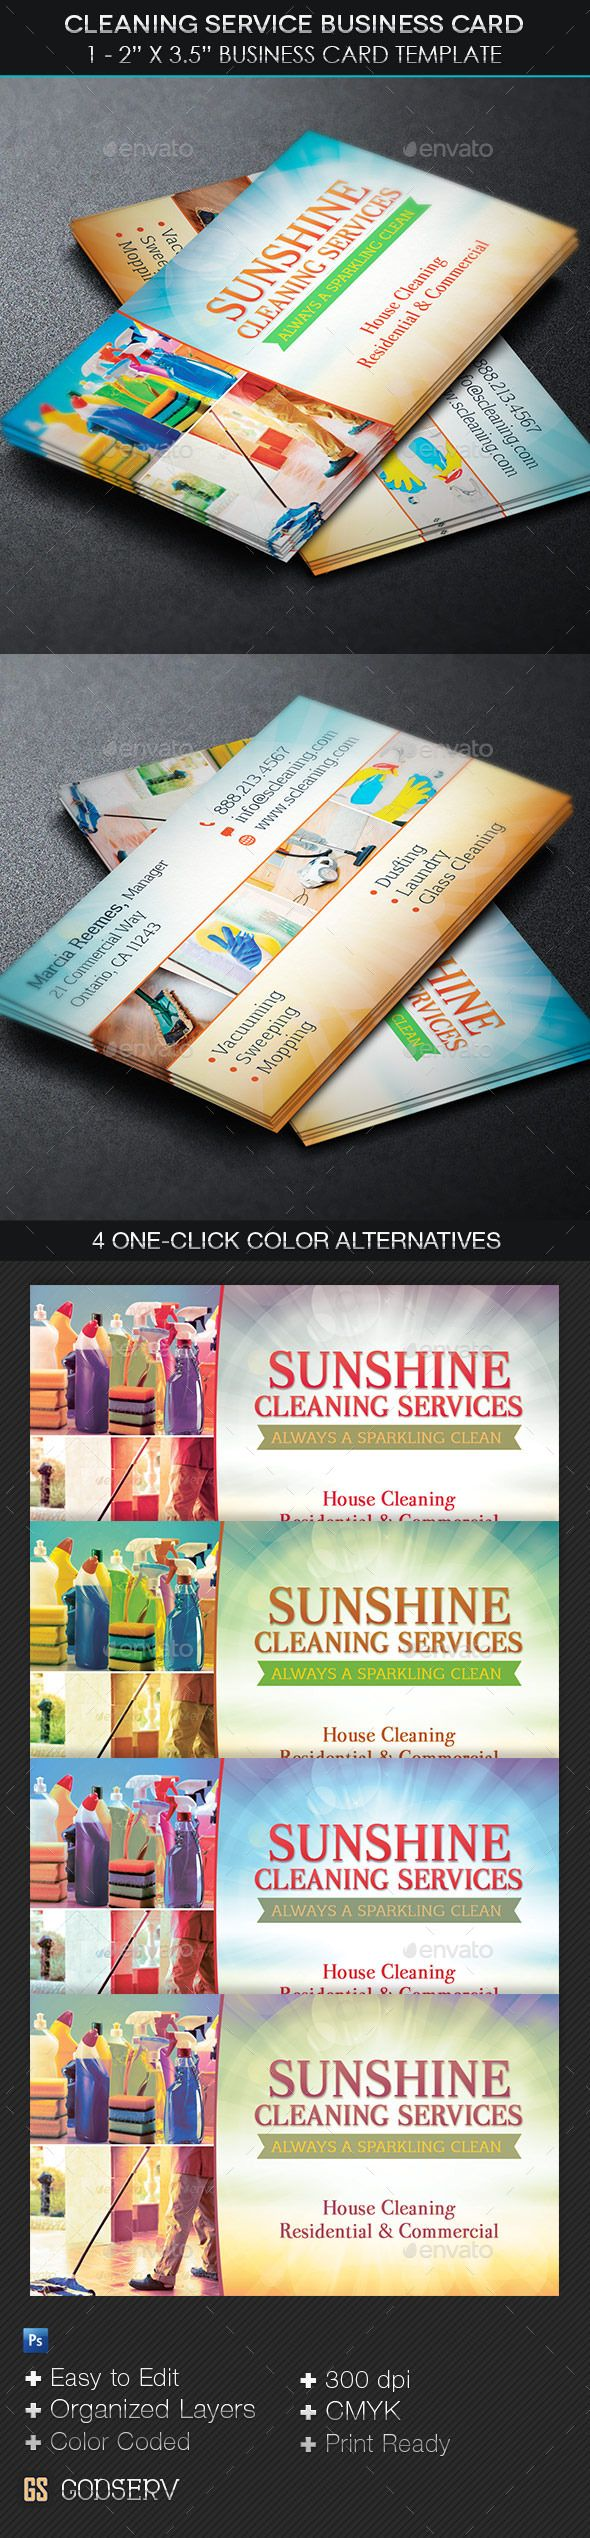 Cleaning Service Business Card Template | Card templates, Business ...